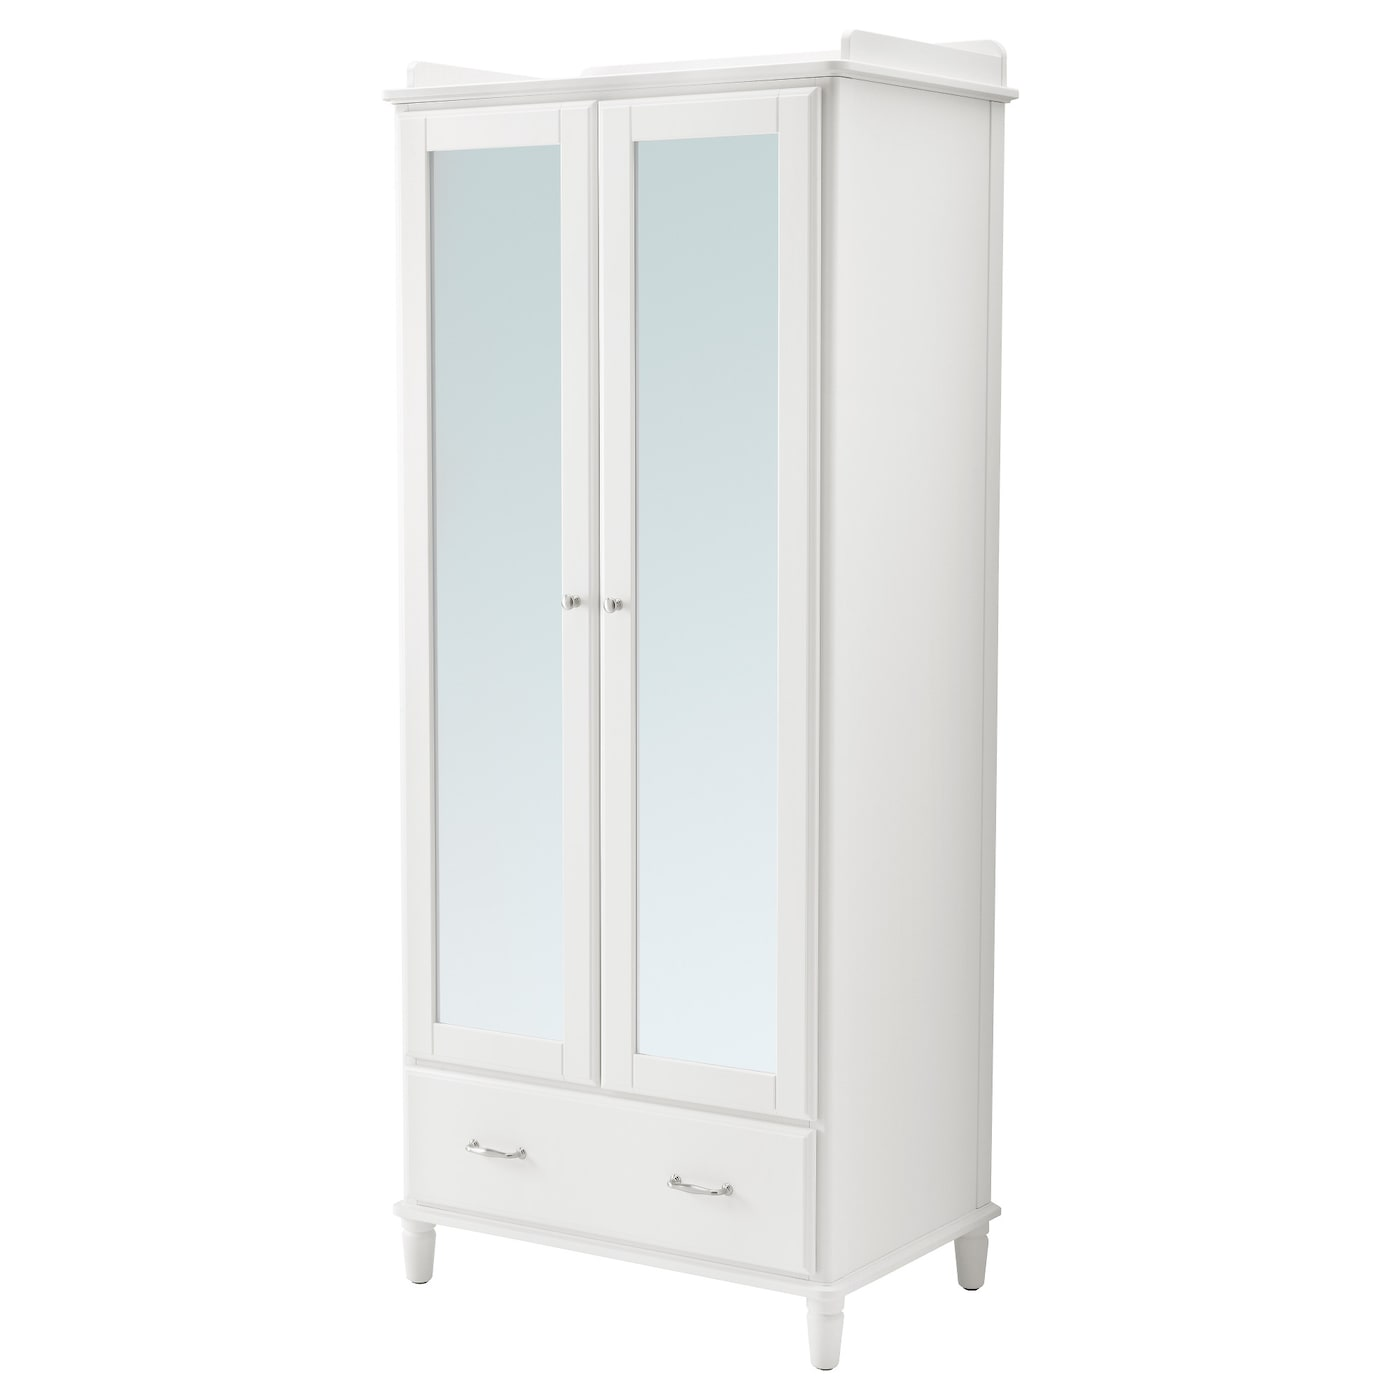 gallery throughout furniture photos wardrobes storages cupboard view doors tambura sliding accent online curved wardrobe at white image miele buy fashionable attachment of